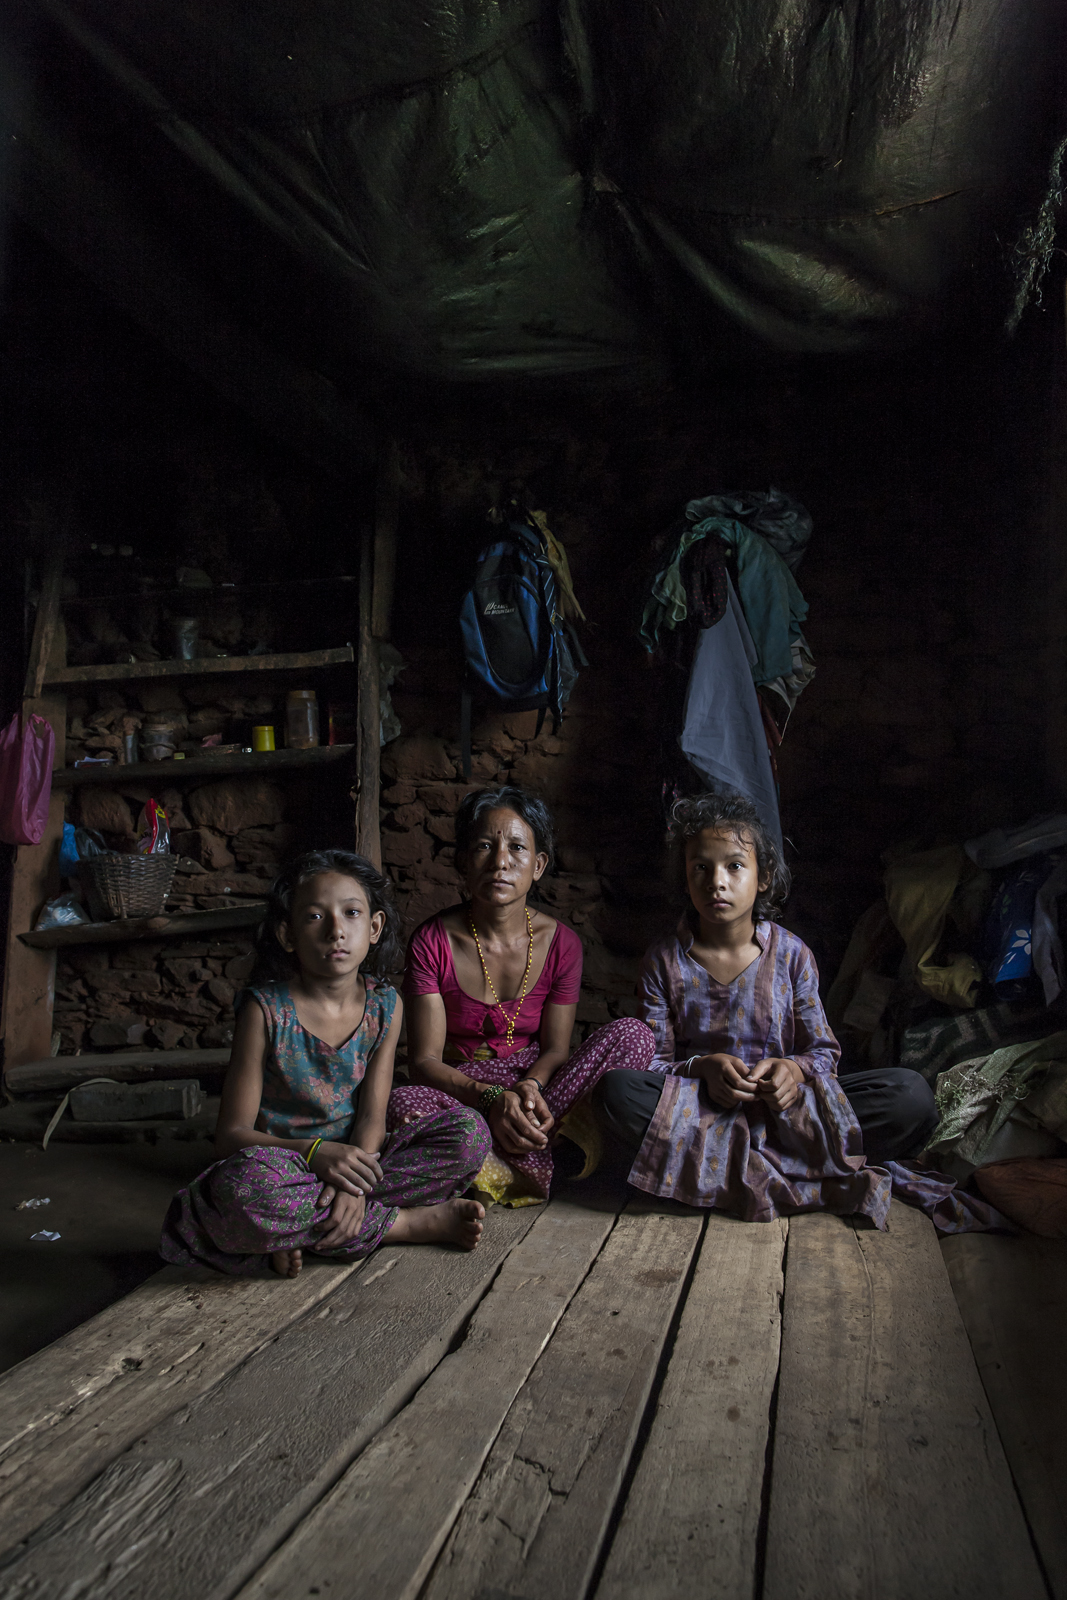 """David Brunetti; Documentary; Documentary Photography; Reportage; photographic portrait; Photography; Photojournalism; Portraiture; Nepal; Asia; EveryChild; charity; NGO; child labour; children's rights; domestic servants; child domestics"""